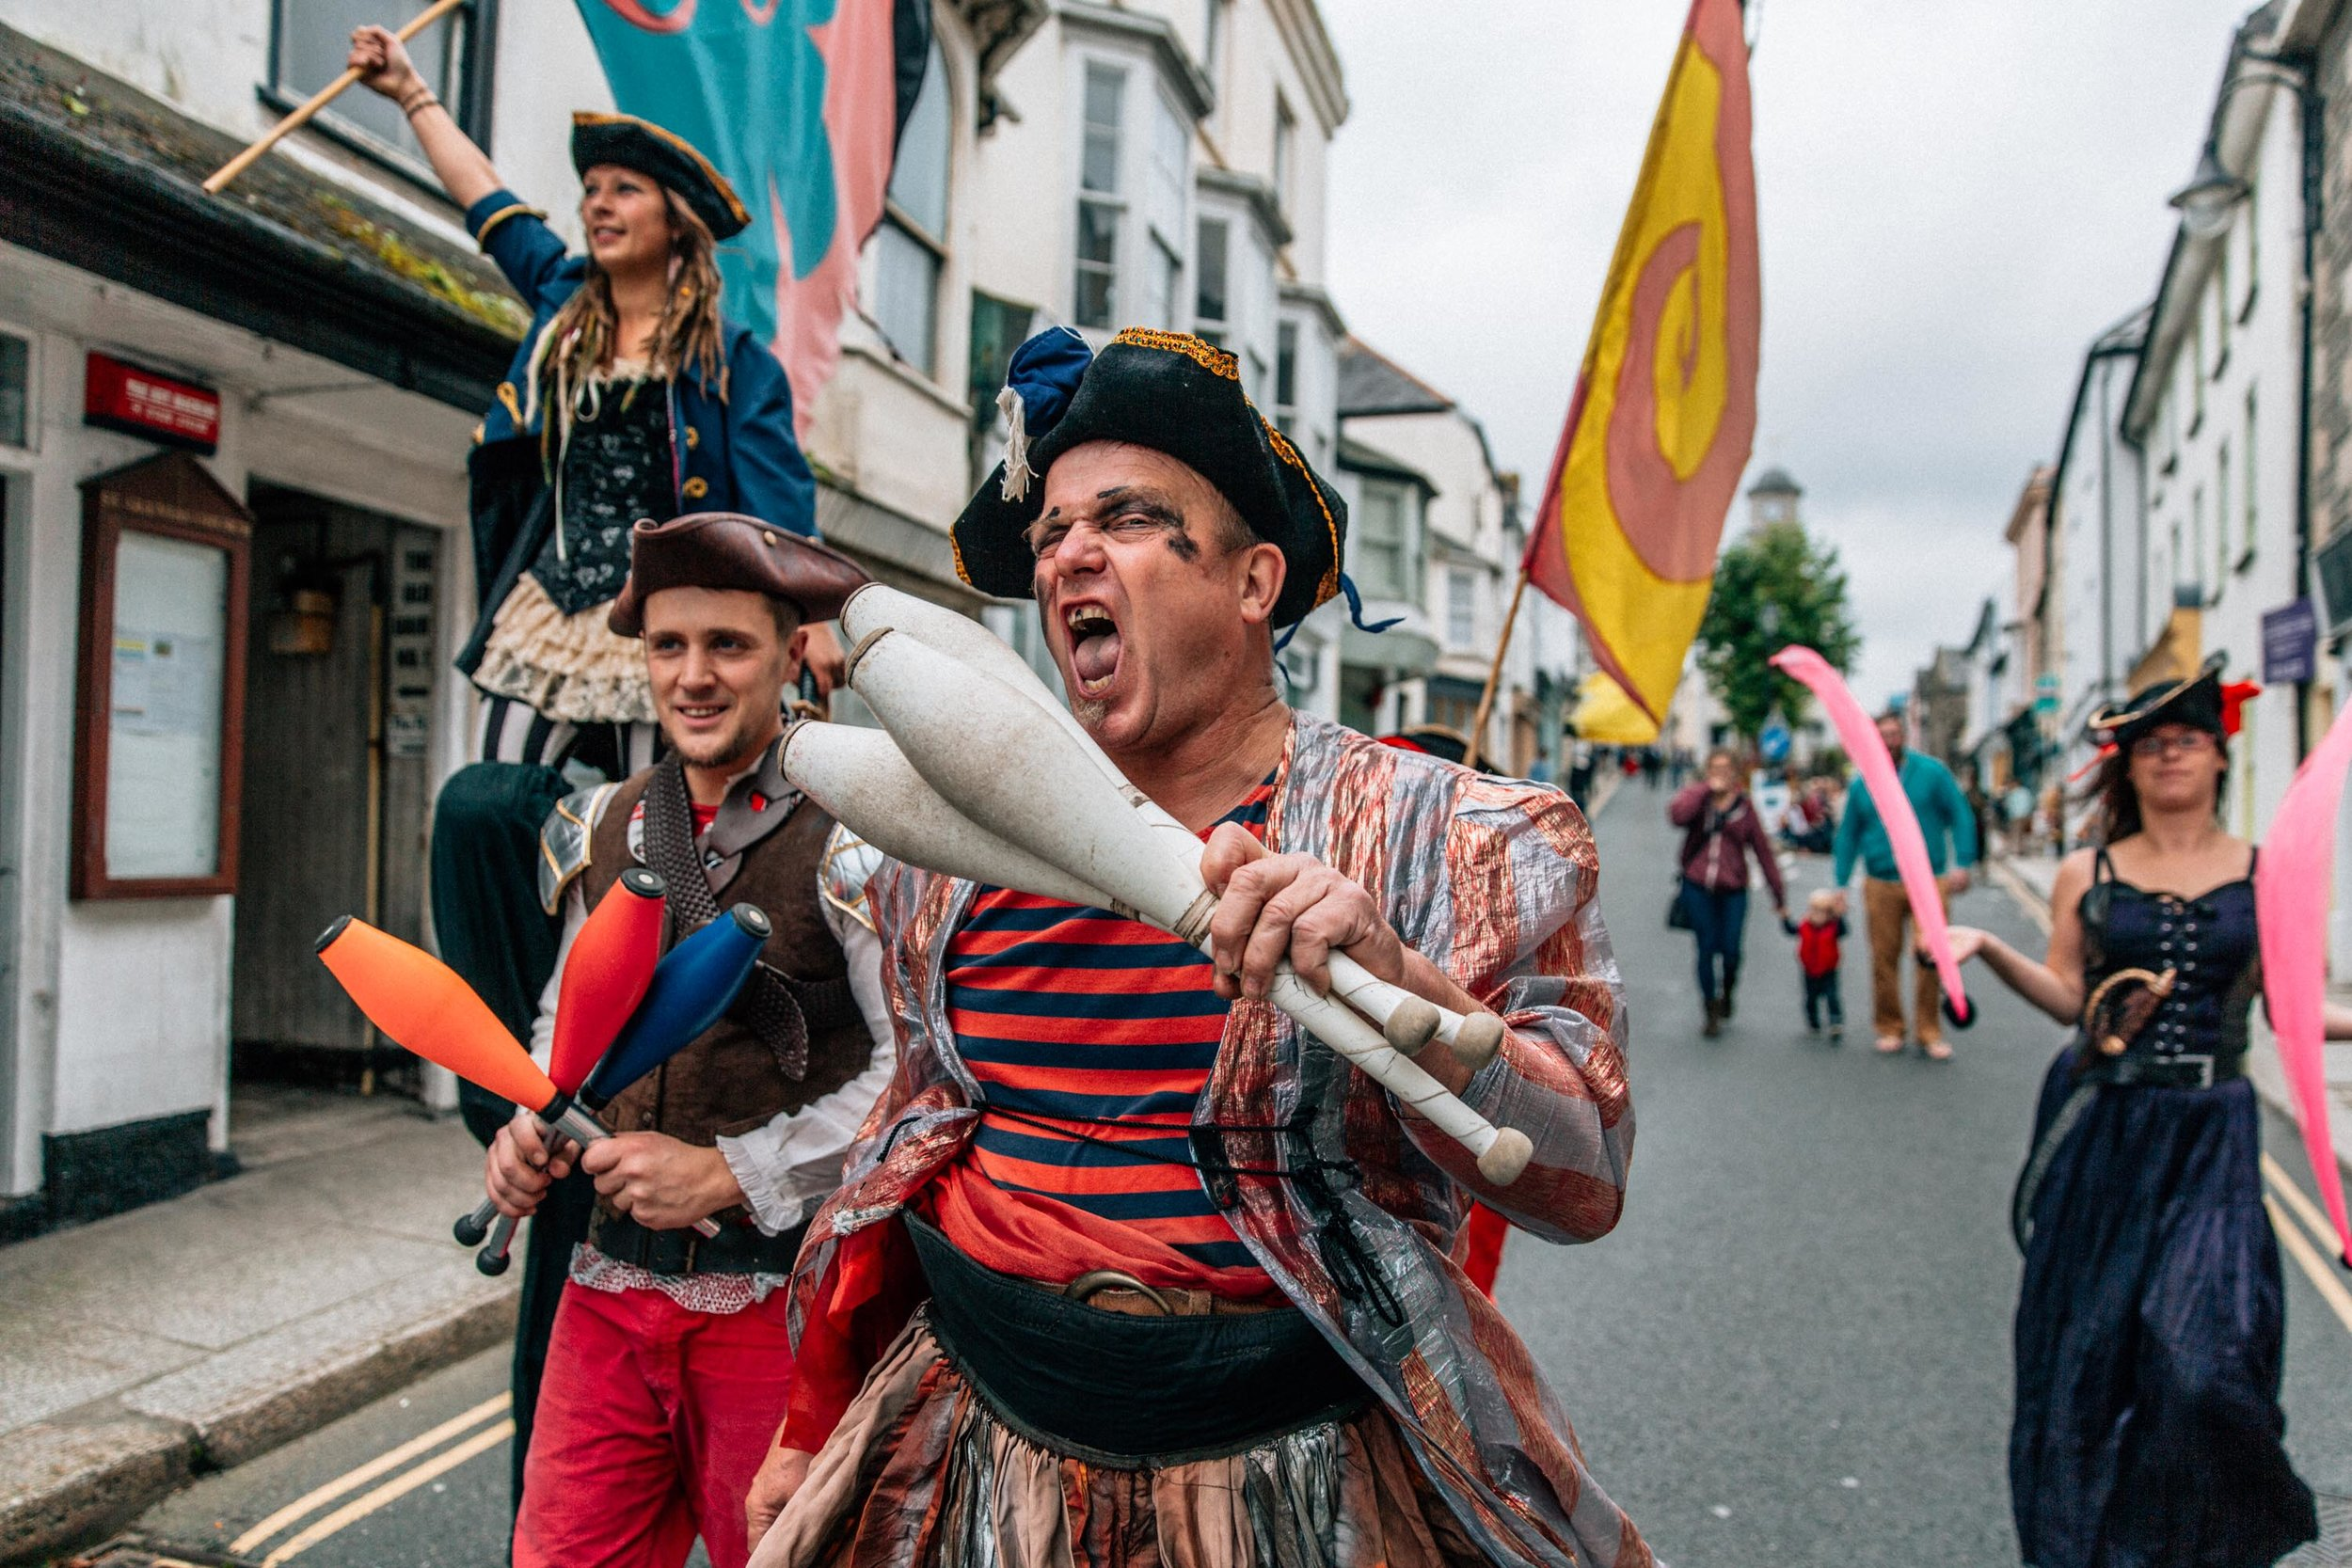 A group dressed as Cornish Pirates march down Penryn high-street to the start of the Penryn Kemeneth procession. Kemeneth is an annual two-day community heritage festival. Penryn, Cornwall, UK. 14th Oct 2017.